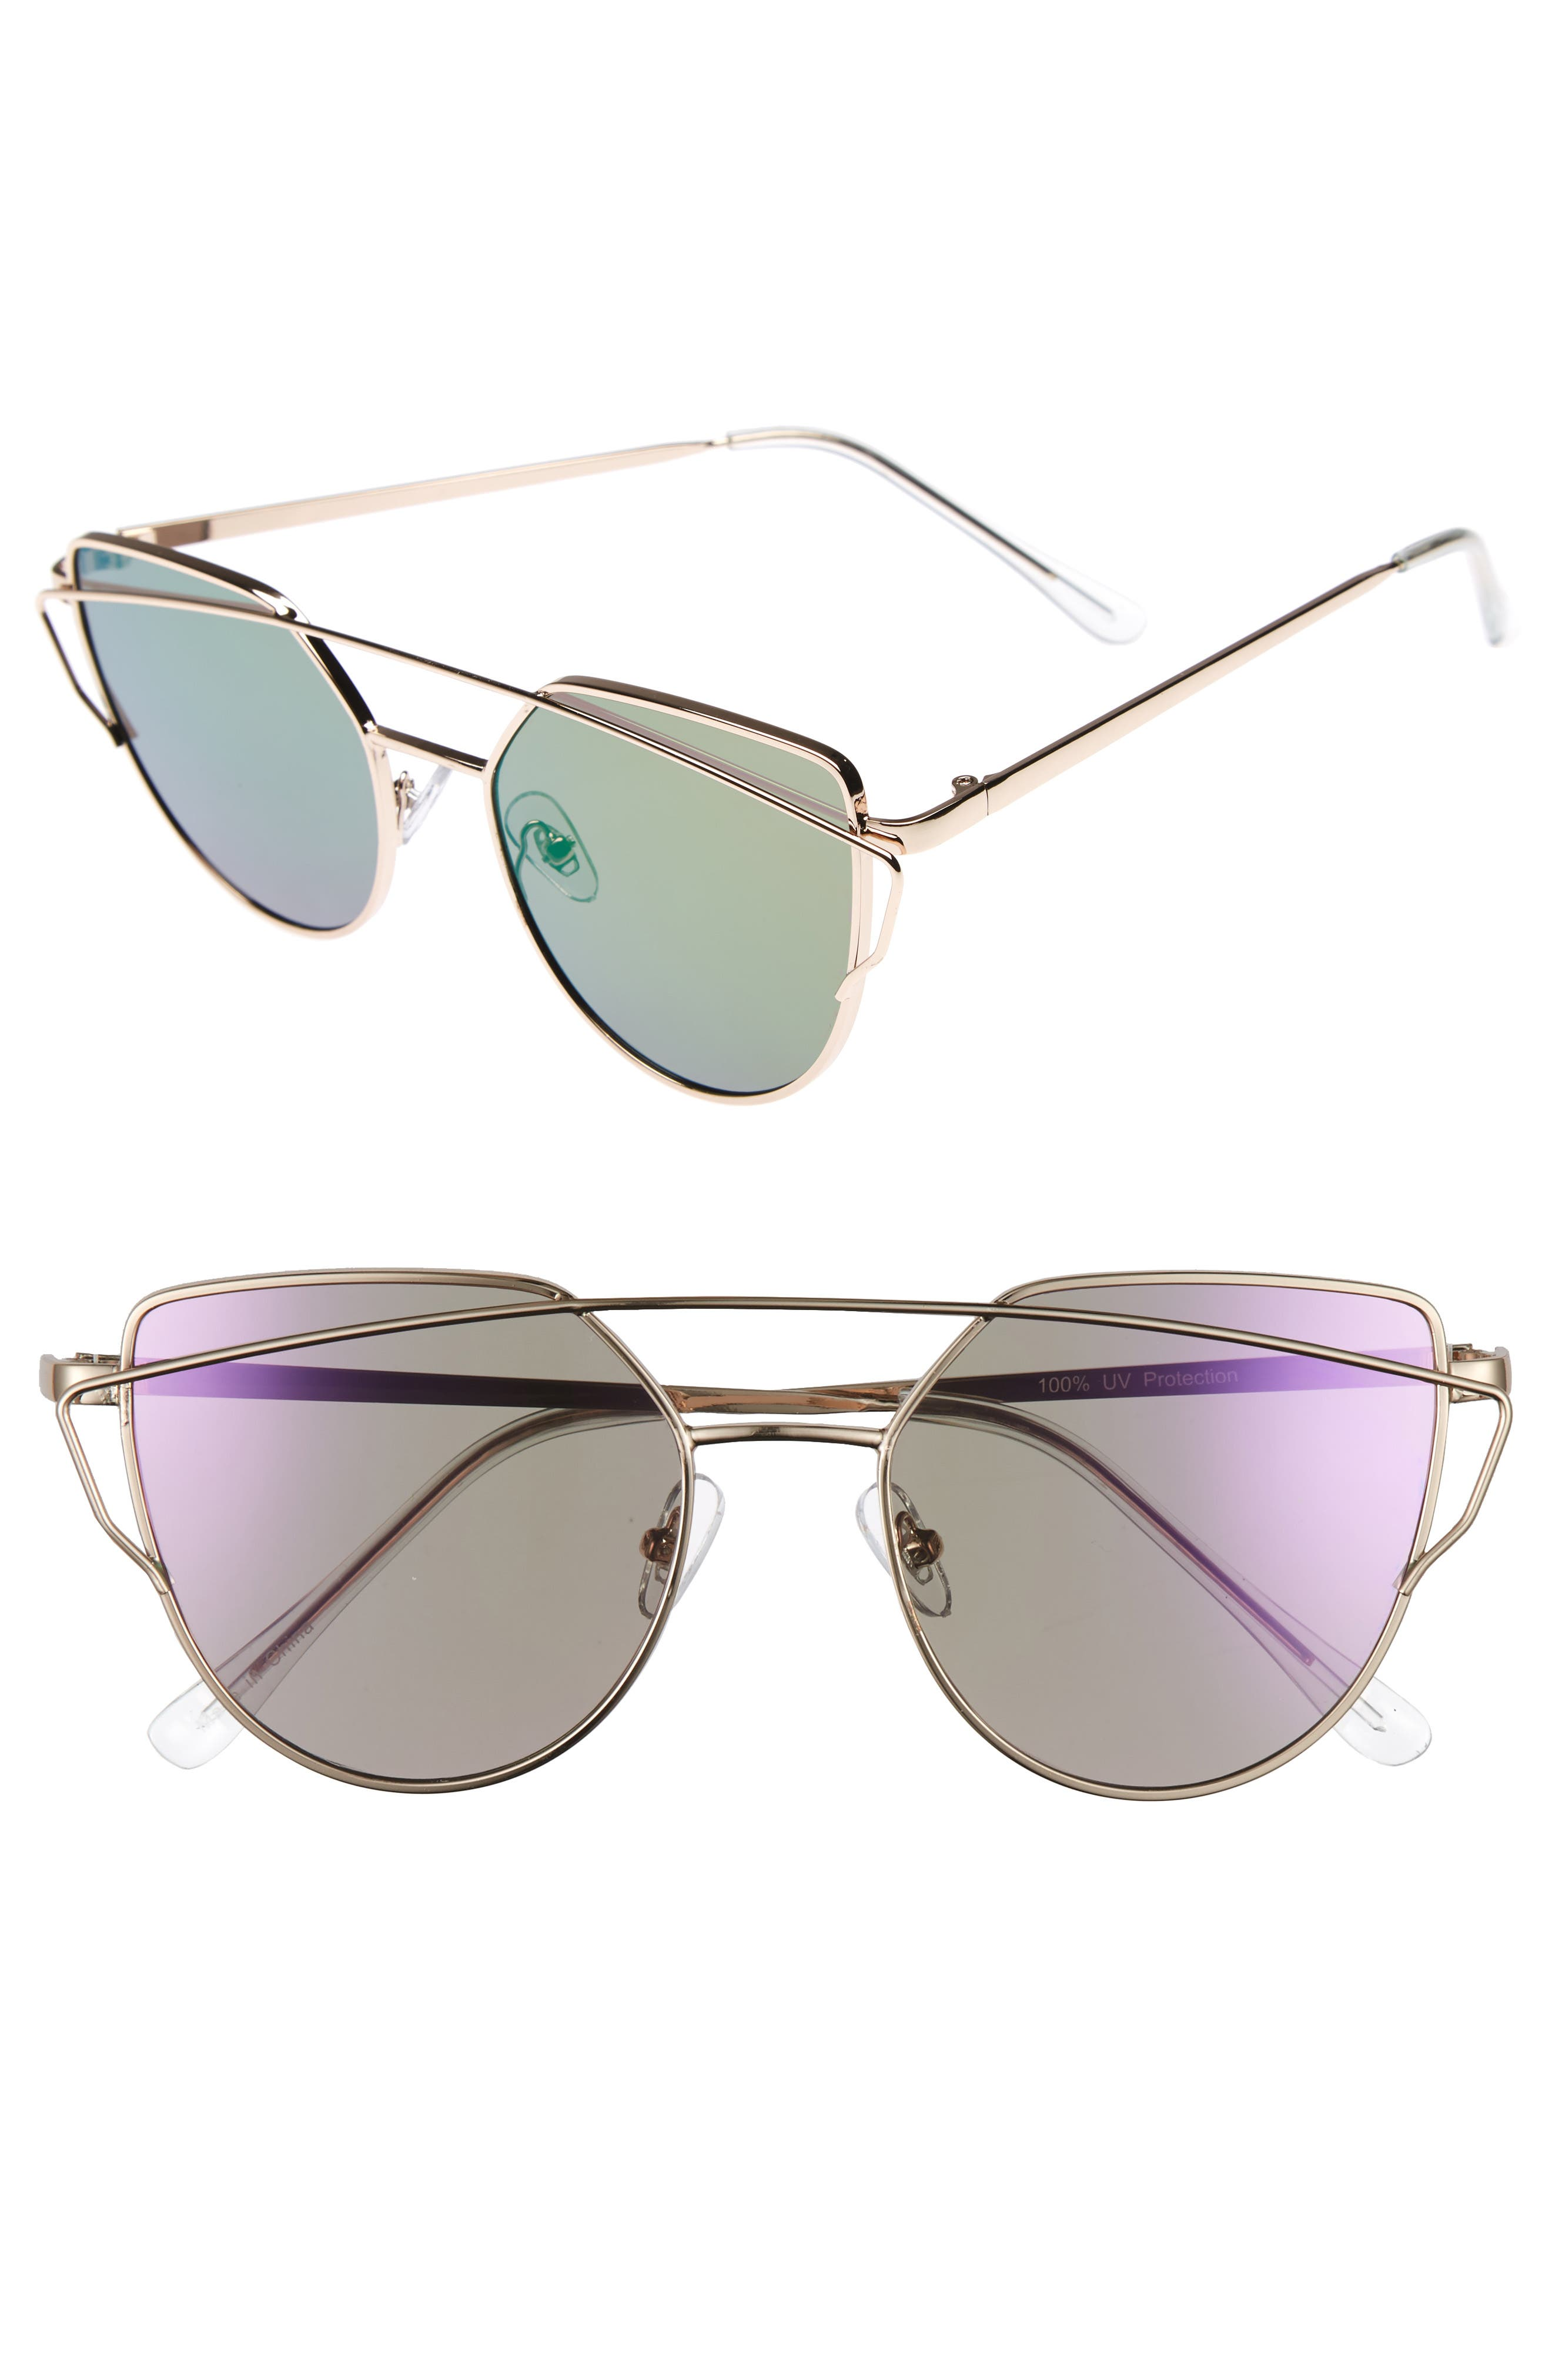 51mm Thin Brow Angular Aviator Sunglasses,                             Main thumbnail 8, color,